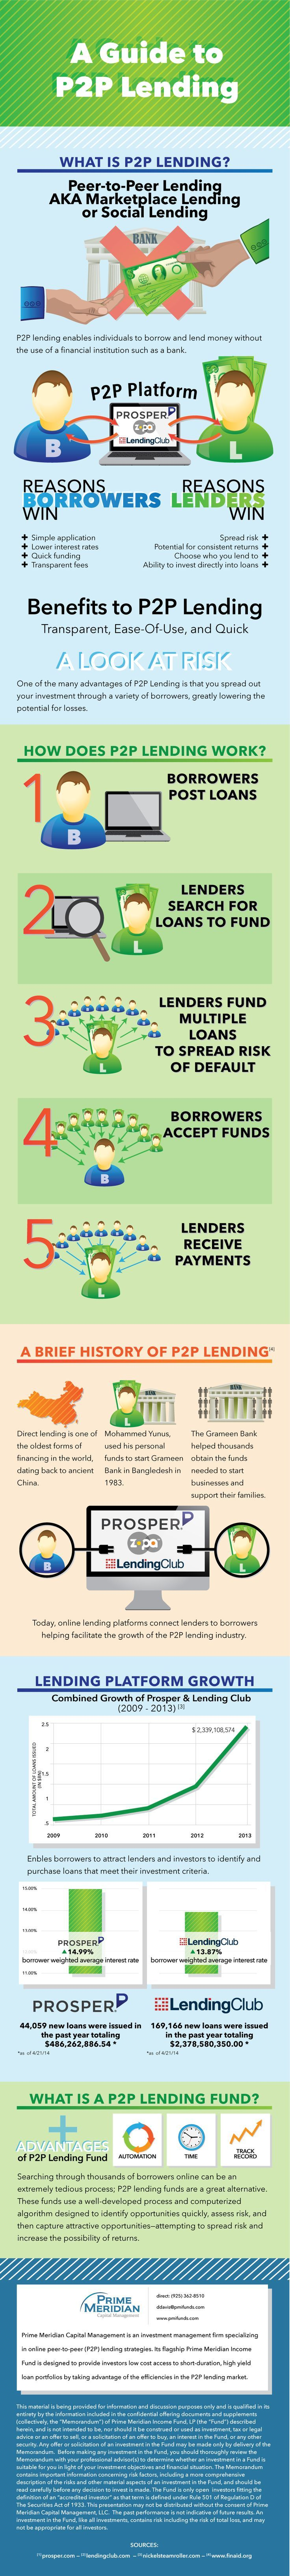 PMI Peer to peer lending infographic Investing, Investing Tips, Investing Ideas